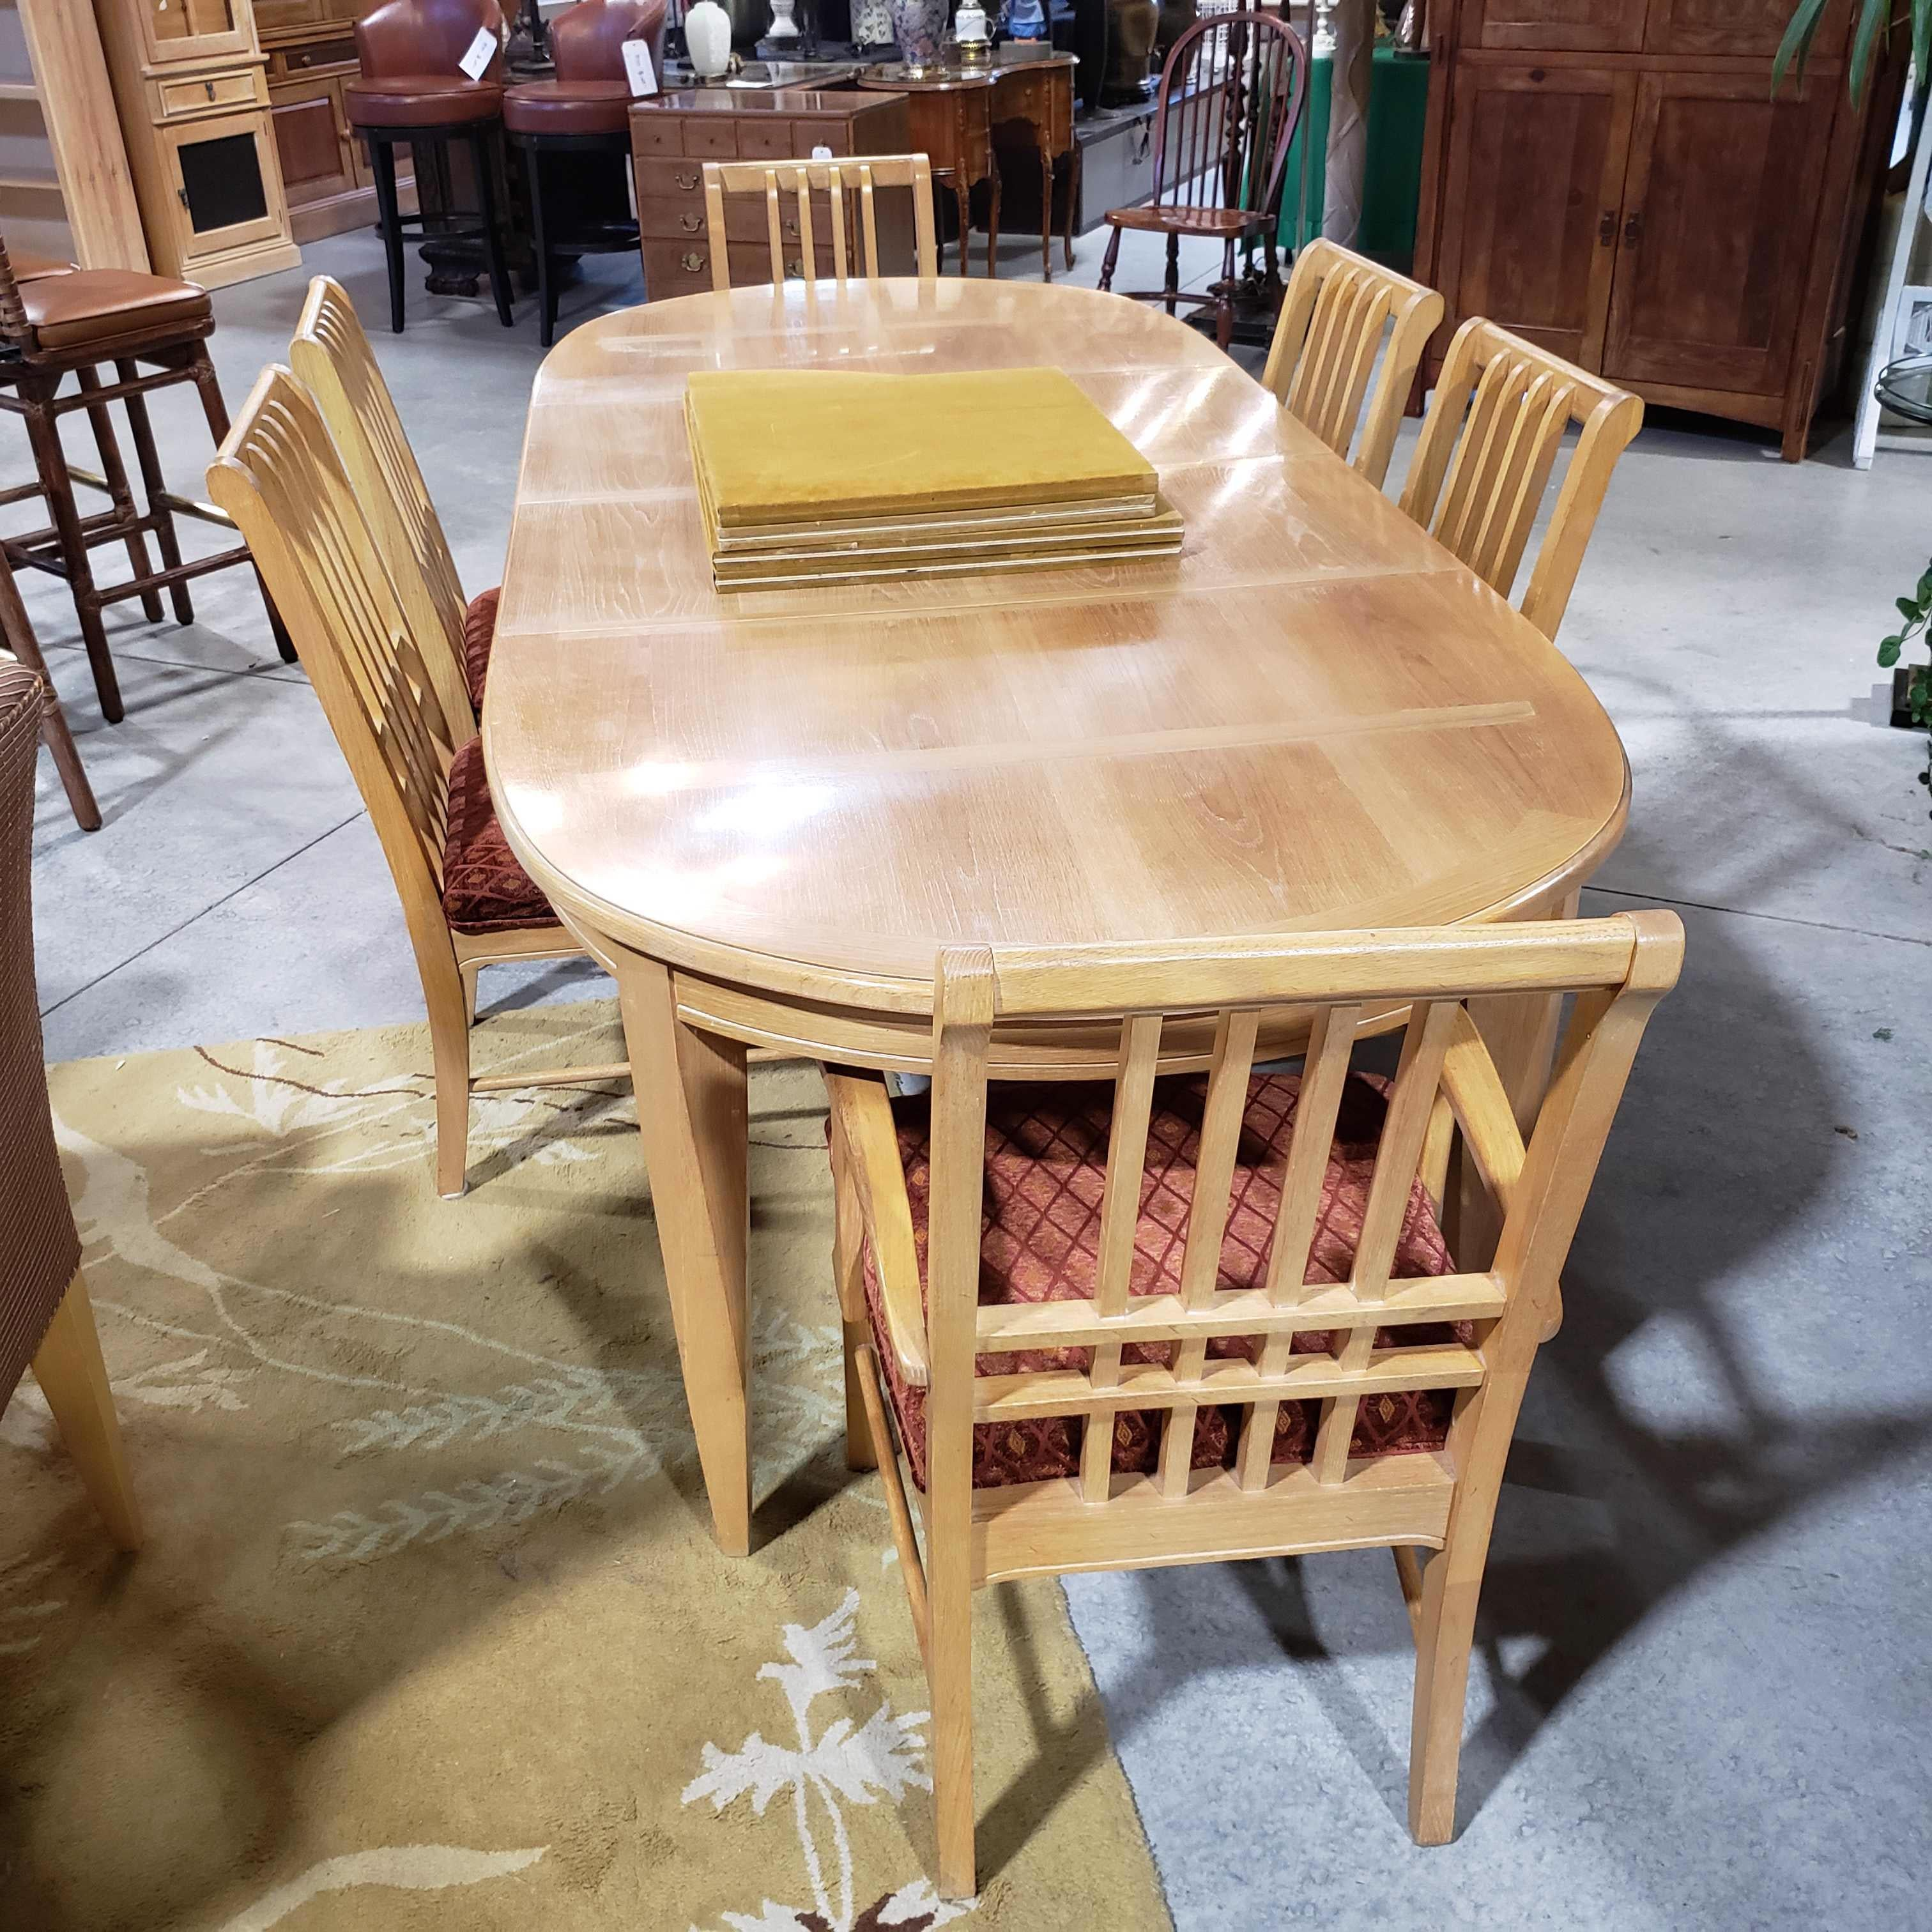 "Set of 7 108""x 44""x 30.5"" Thomasville Oval Dining Table with 2 Leaves and 6 Chairs"